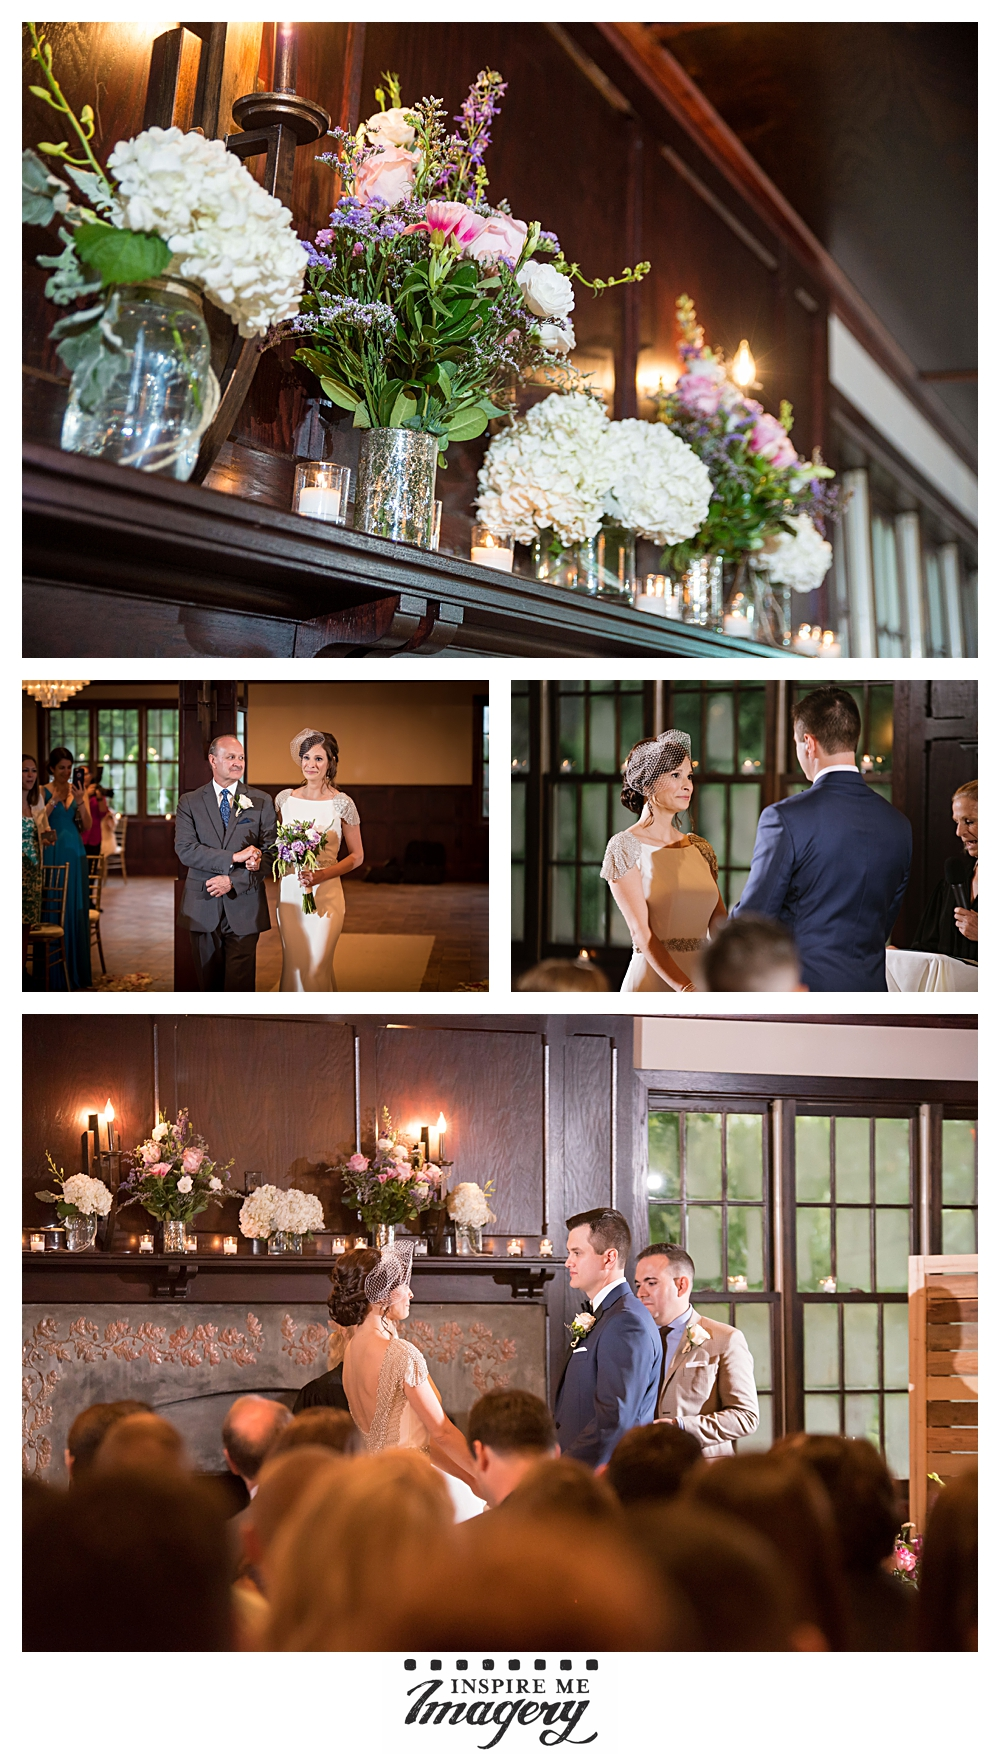 The ceremony room was beautiful, and the flowers and candle light gave the softest, romantic atmosphere to the ceremony.